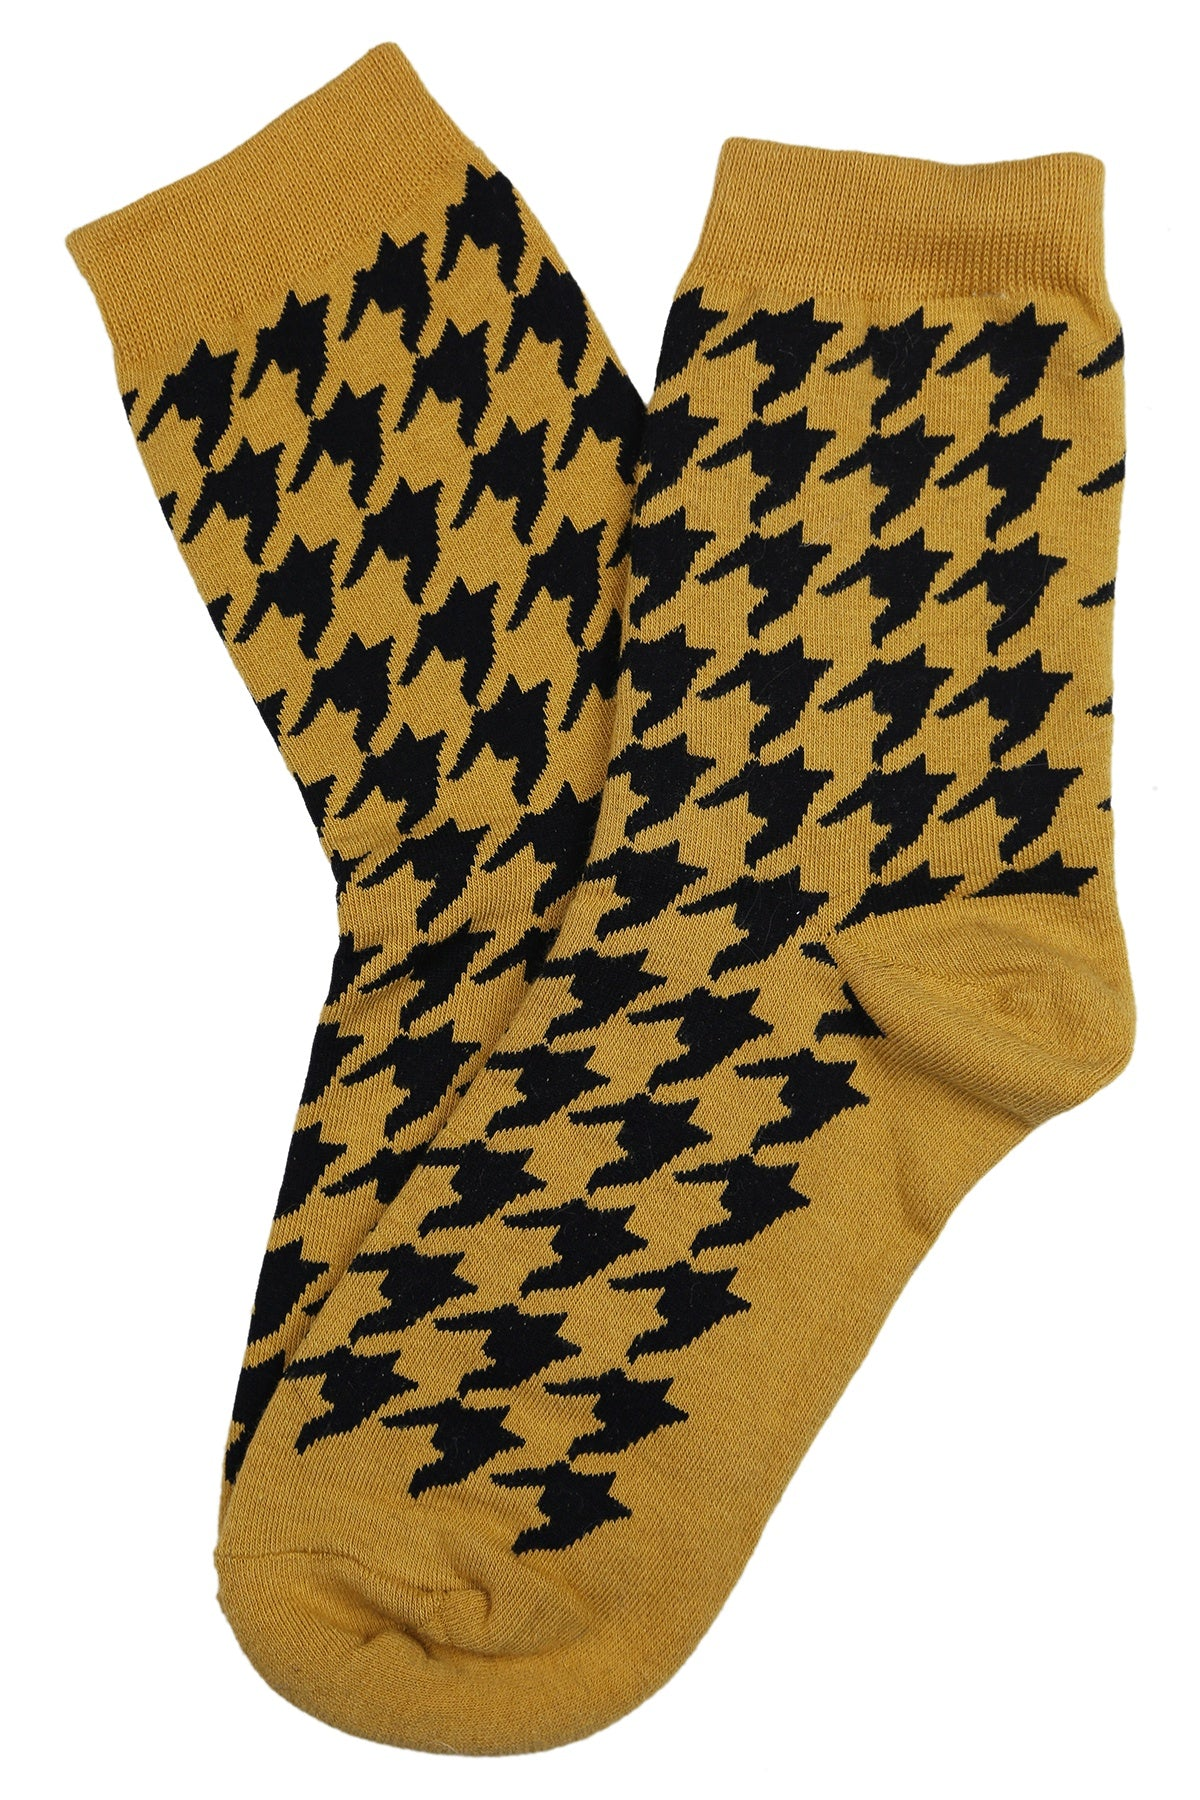 Hilary Houndstooth Cotton Socks Mustard Yellow